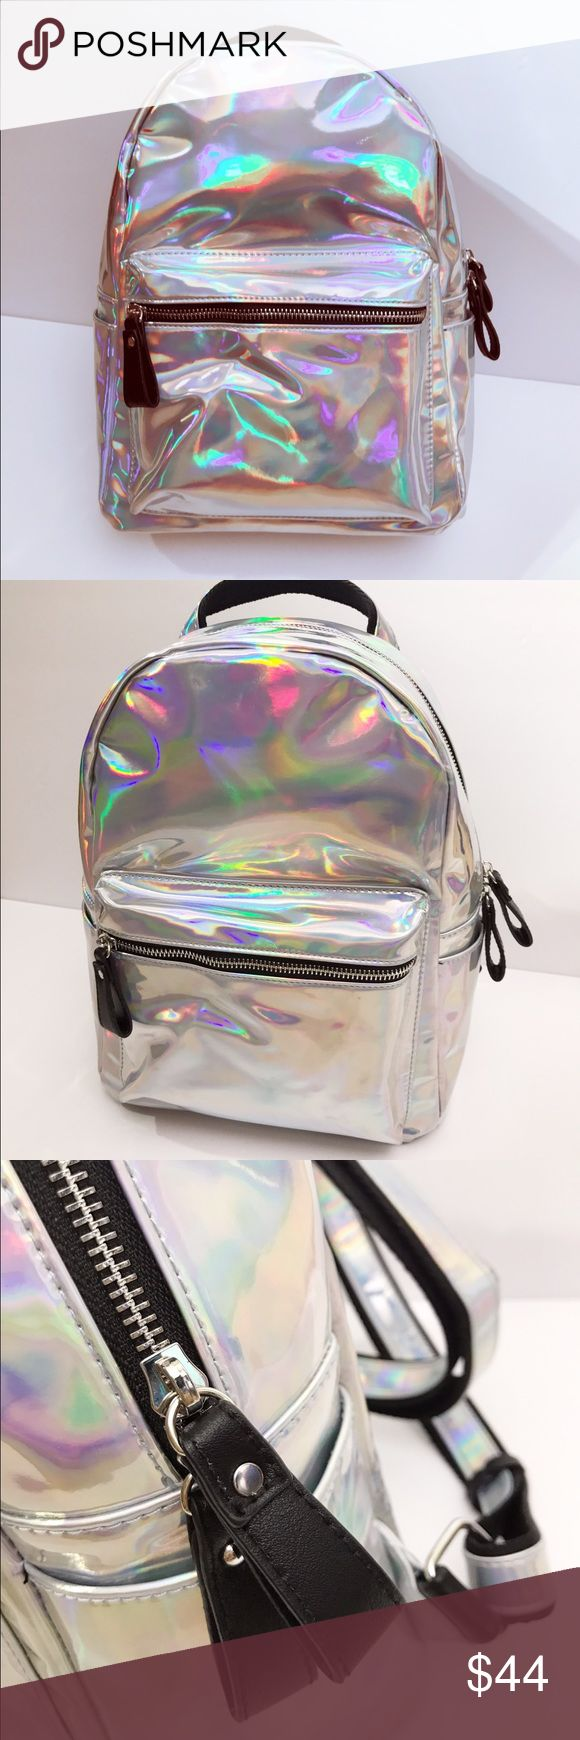 """Holographic Structured Small Backpack Trending holographic structured small backpack. Unleash your inner unicorn spirit animal 🌈🦄. Interior is black with two compartment pockets, rimmed with holographic print. Adjustable straps. 10"""" L x 13.5"""" H x 4"""" W. Bags Backpacks"""